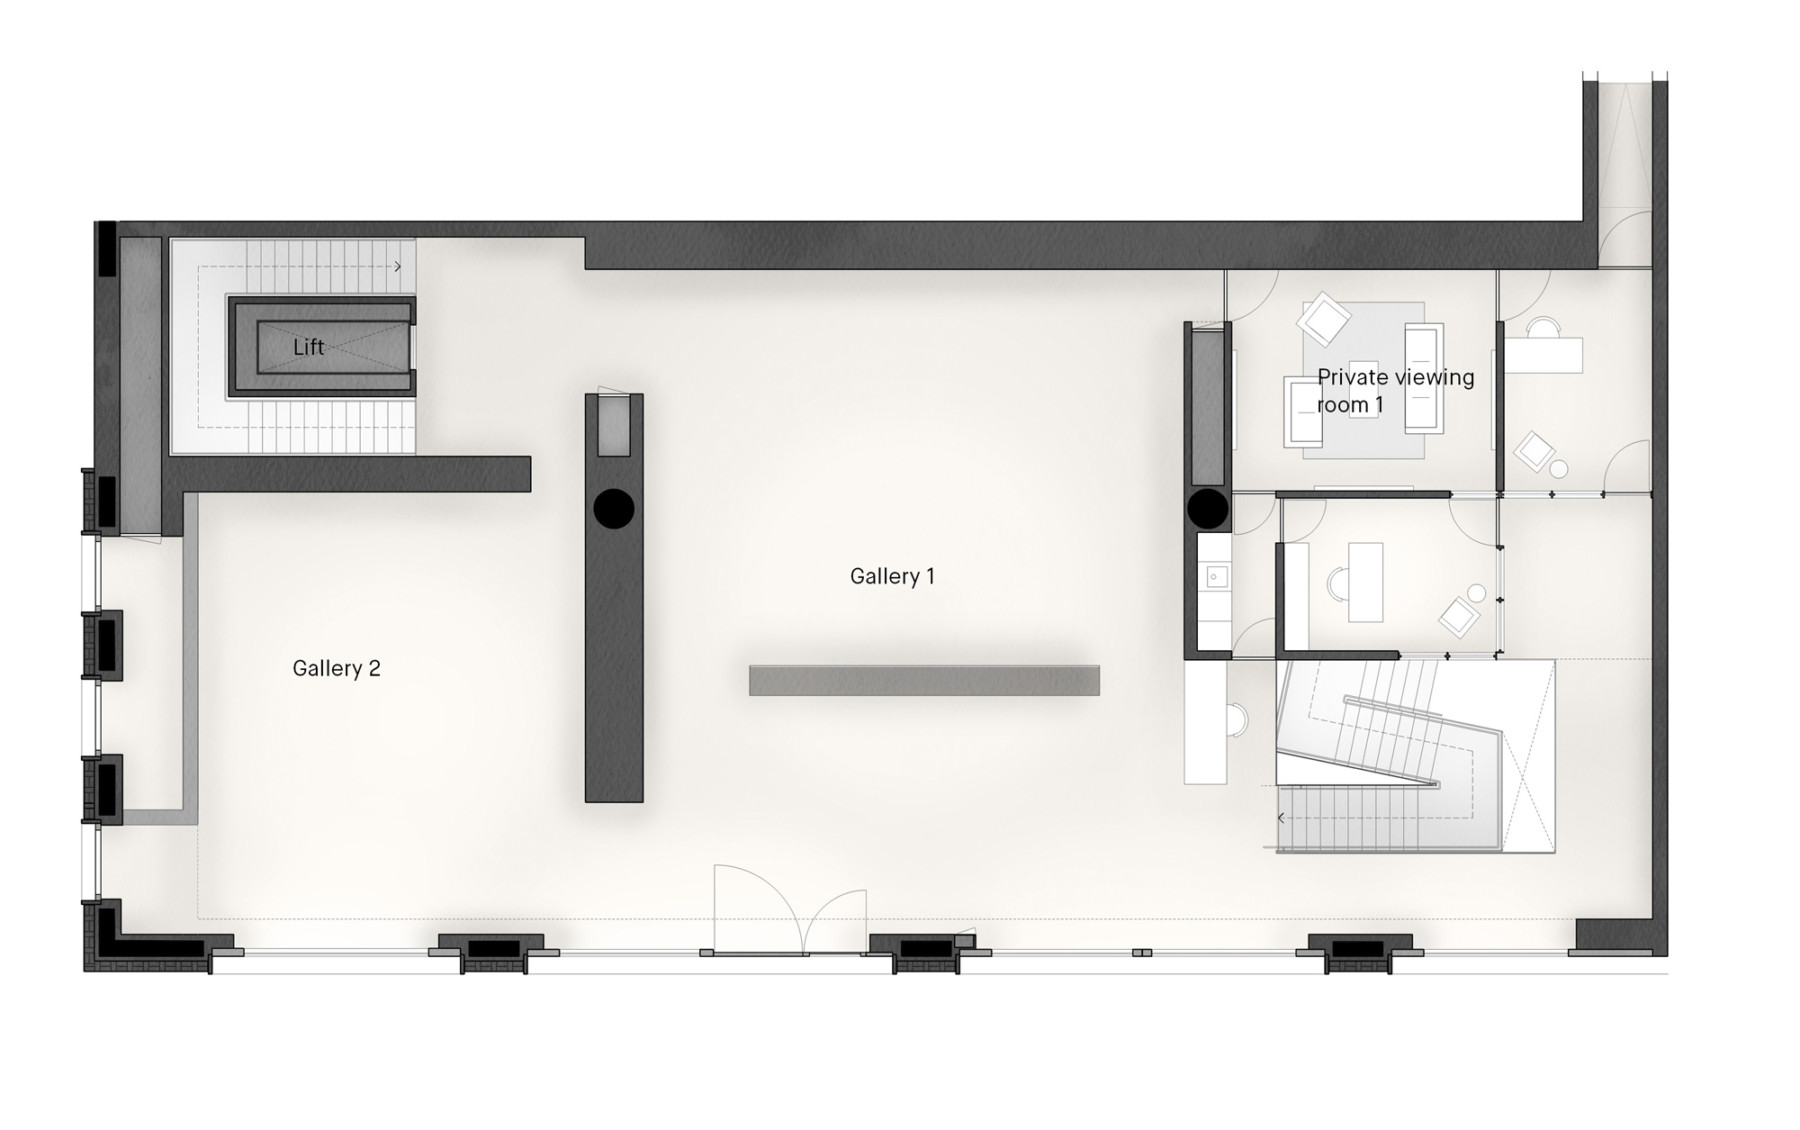 Pace-gallery-hanover-square-jamie-fobert-architects-ground-plan-3